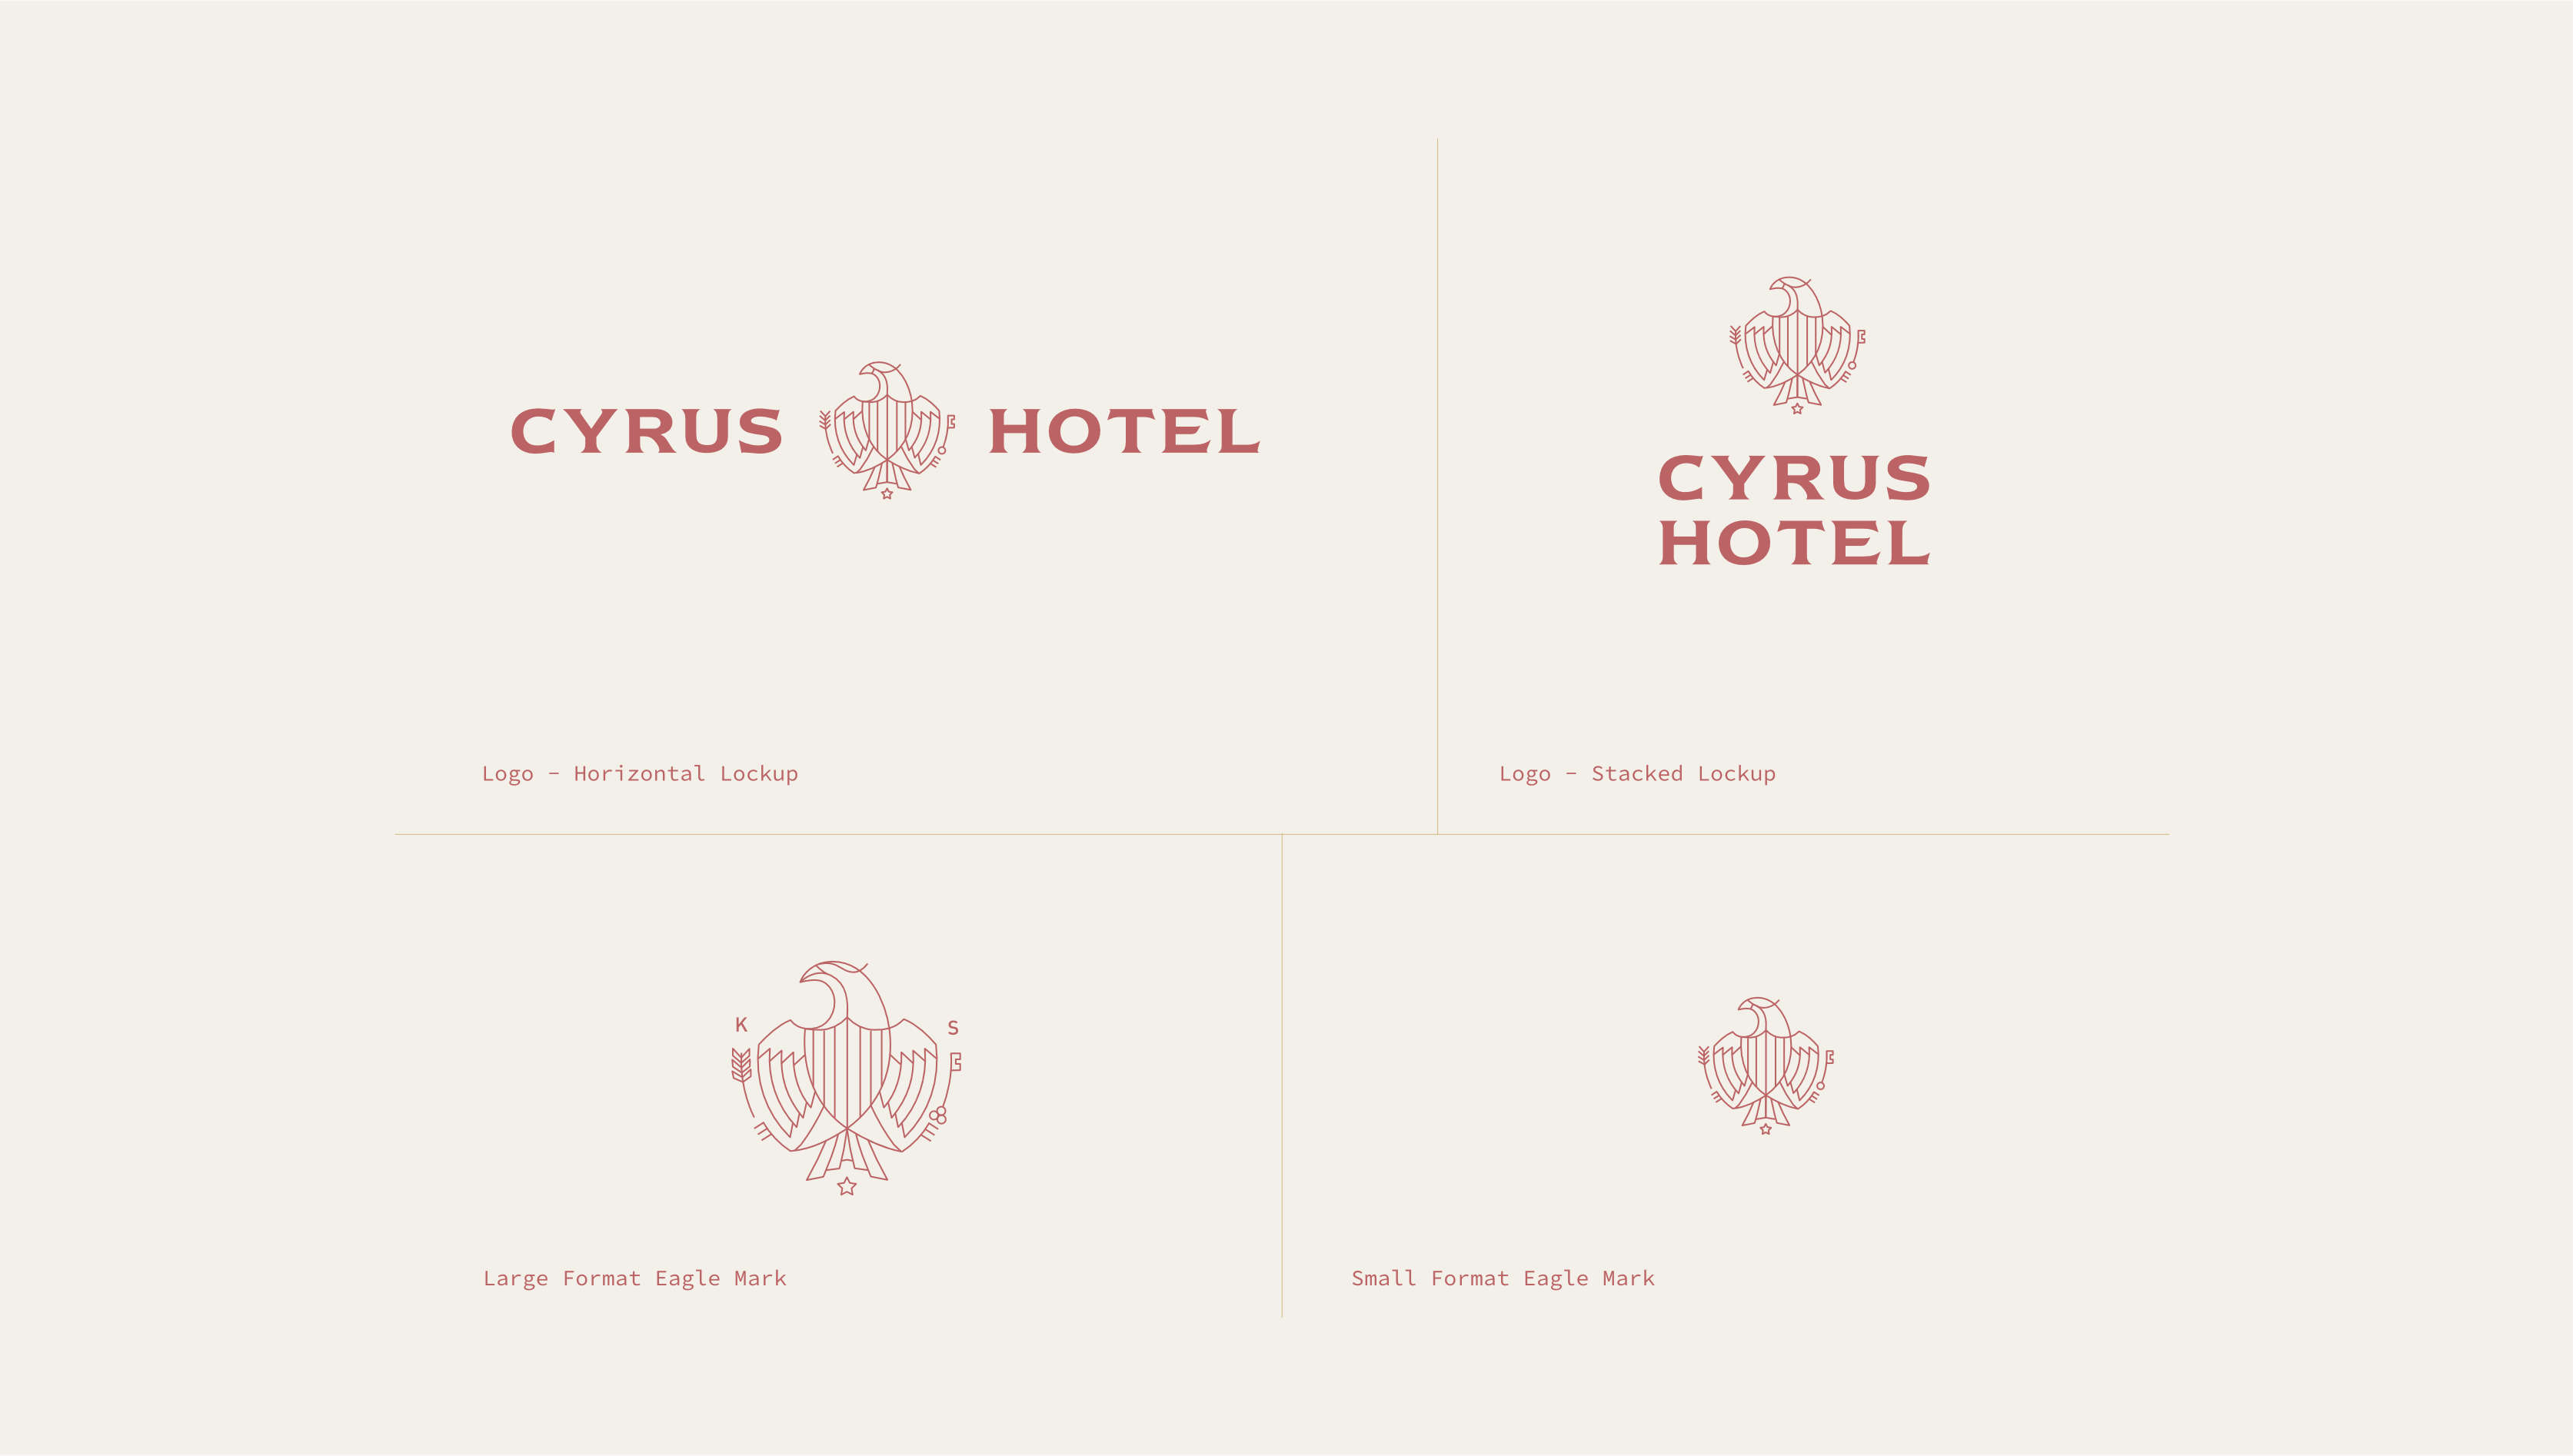 Spread of Cyrus Hotel logo in a range of orientations.